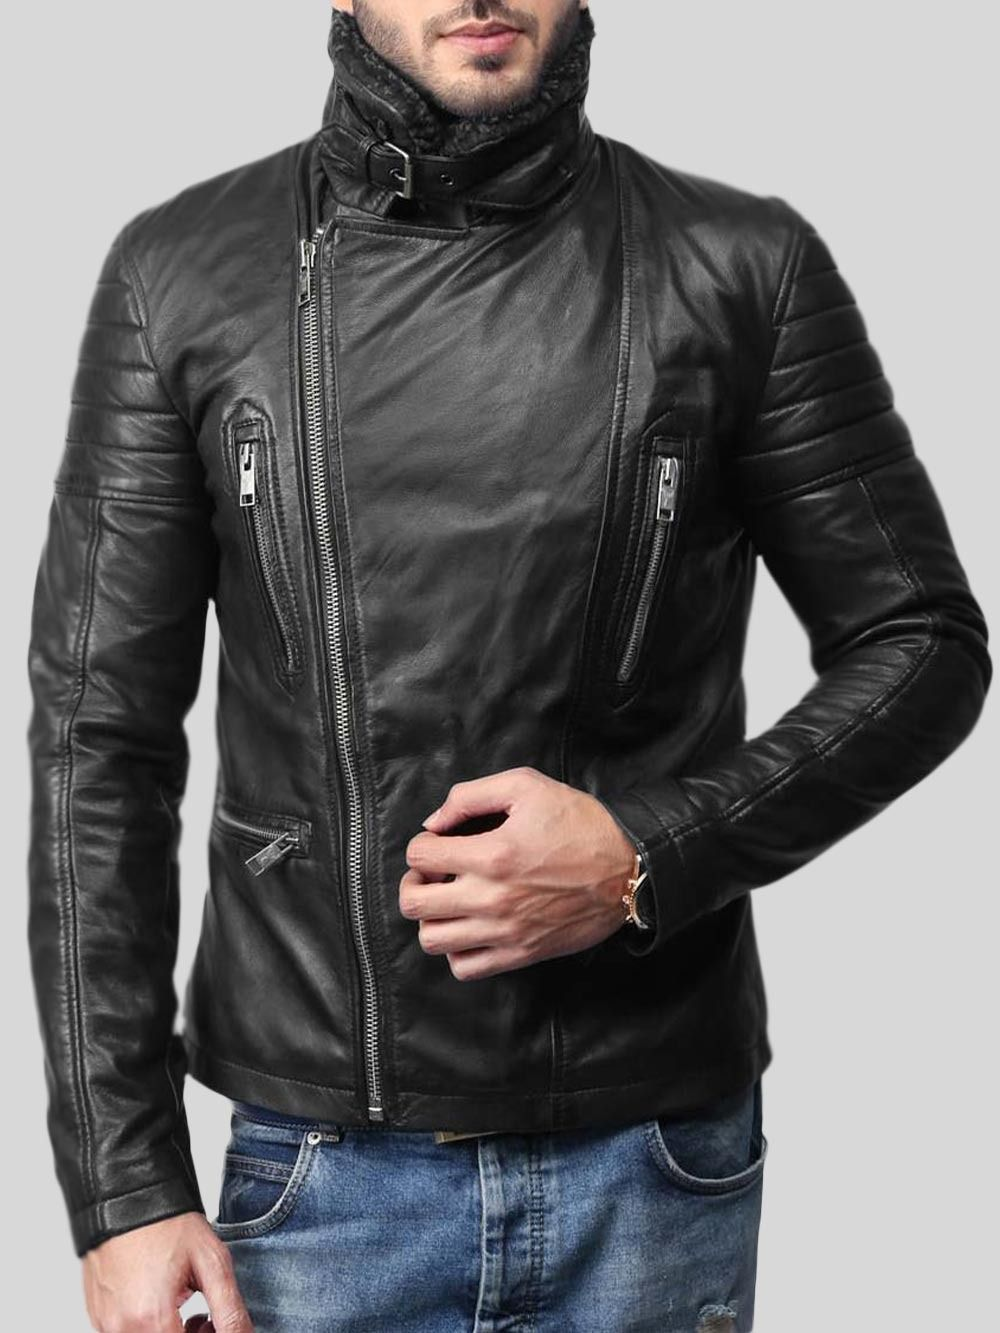 Soft And Solid Asymmetrical Zipper Closure Pure Leather Jacket For Men Leather Jacket Men Real Leather Jacket Leather Jacket [ 1333 x 1000 Pixel ]